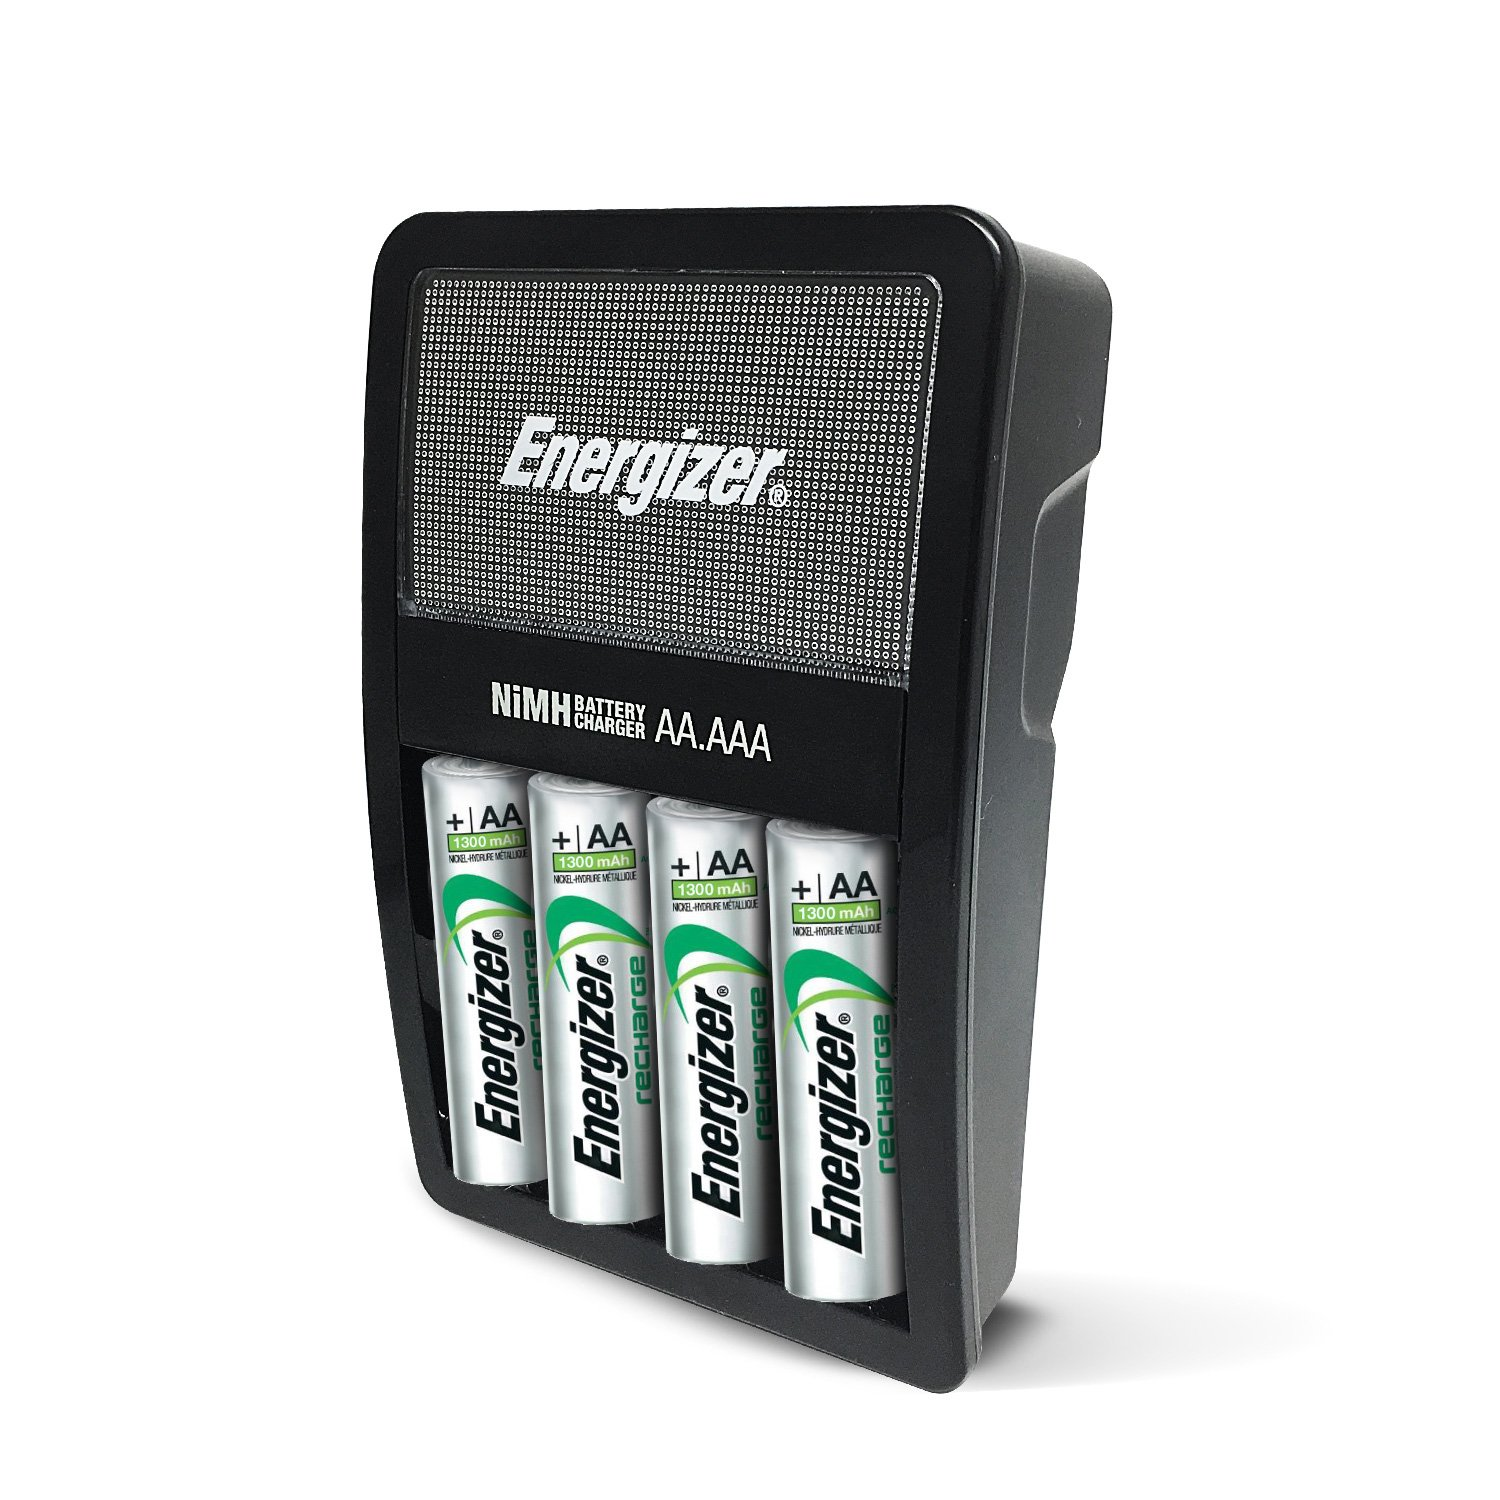 energizer battery charger model chp42us manual